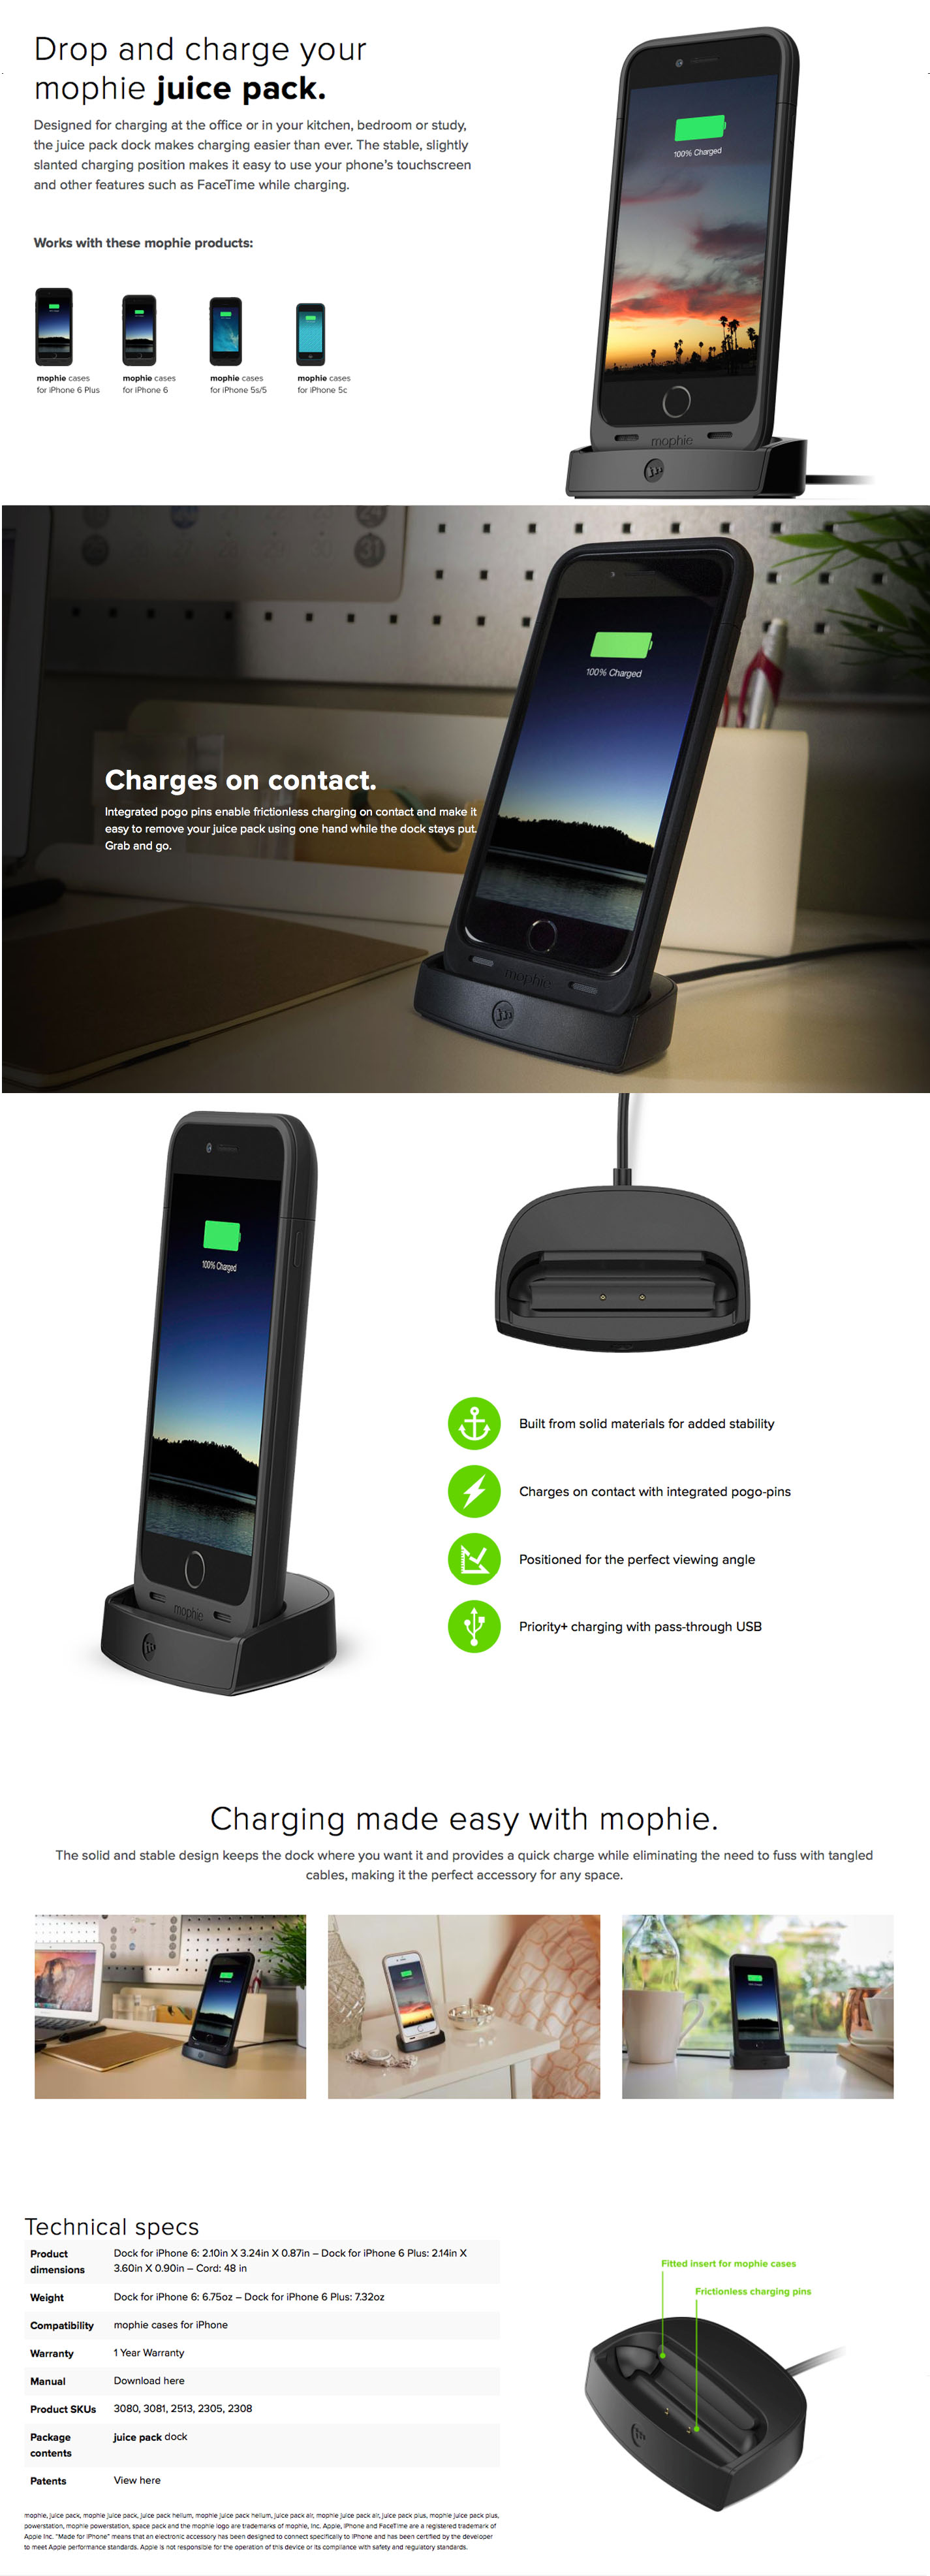 mophie_juice_pack_dock_iphone_6_malaysia